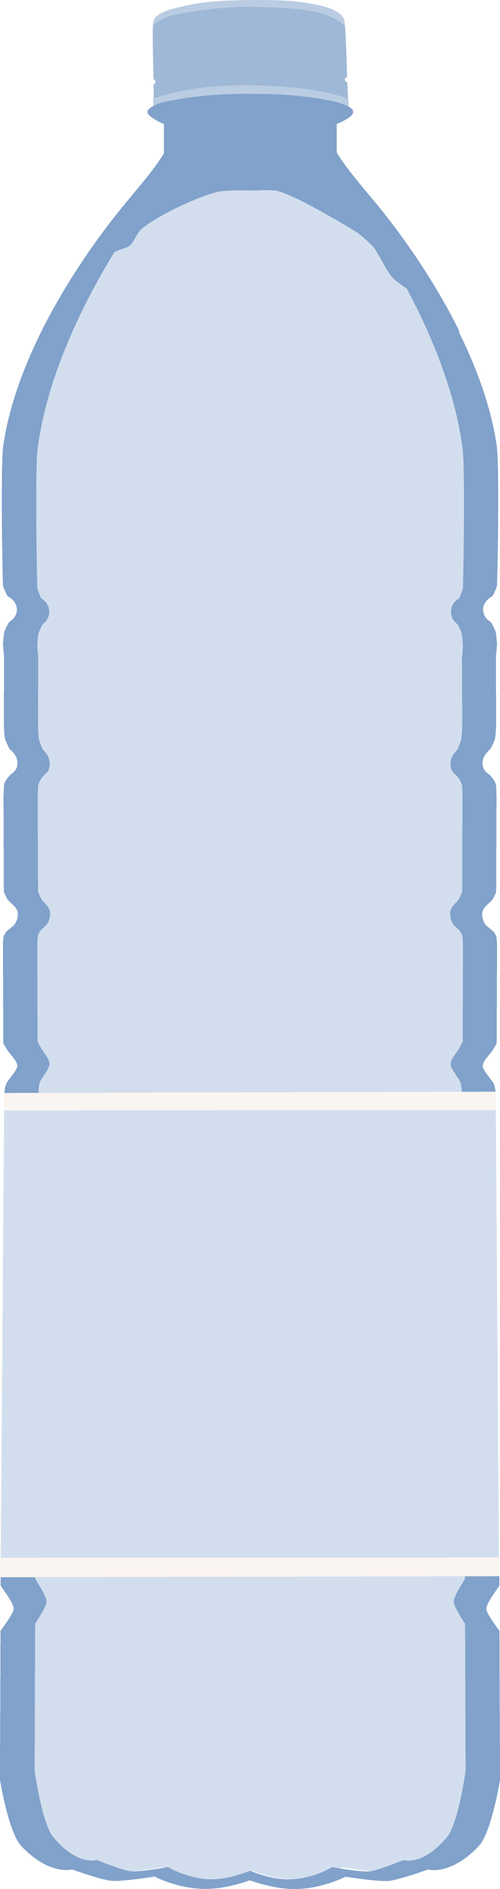 Vector Water Bottle Template Material 03 Free Download